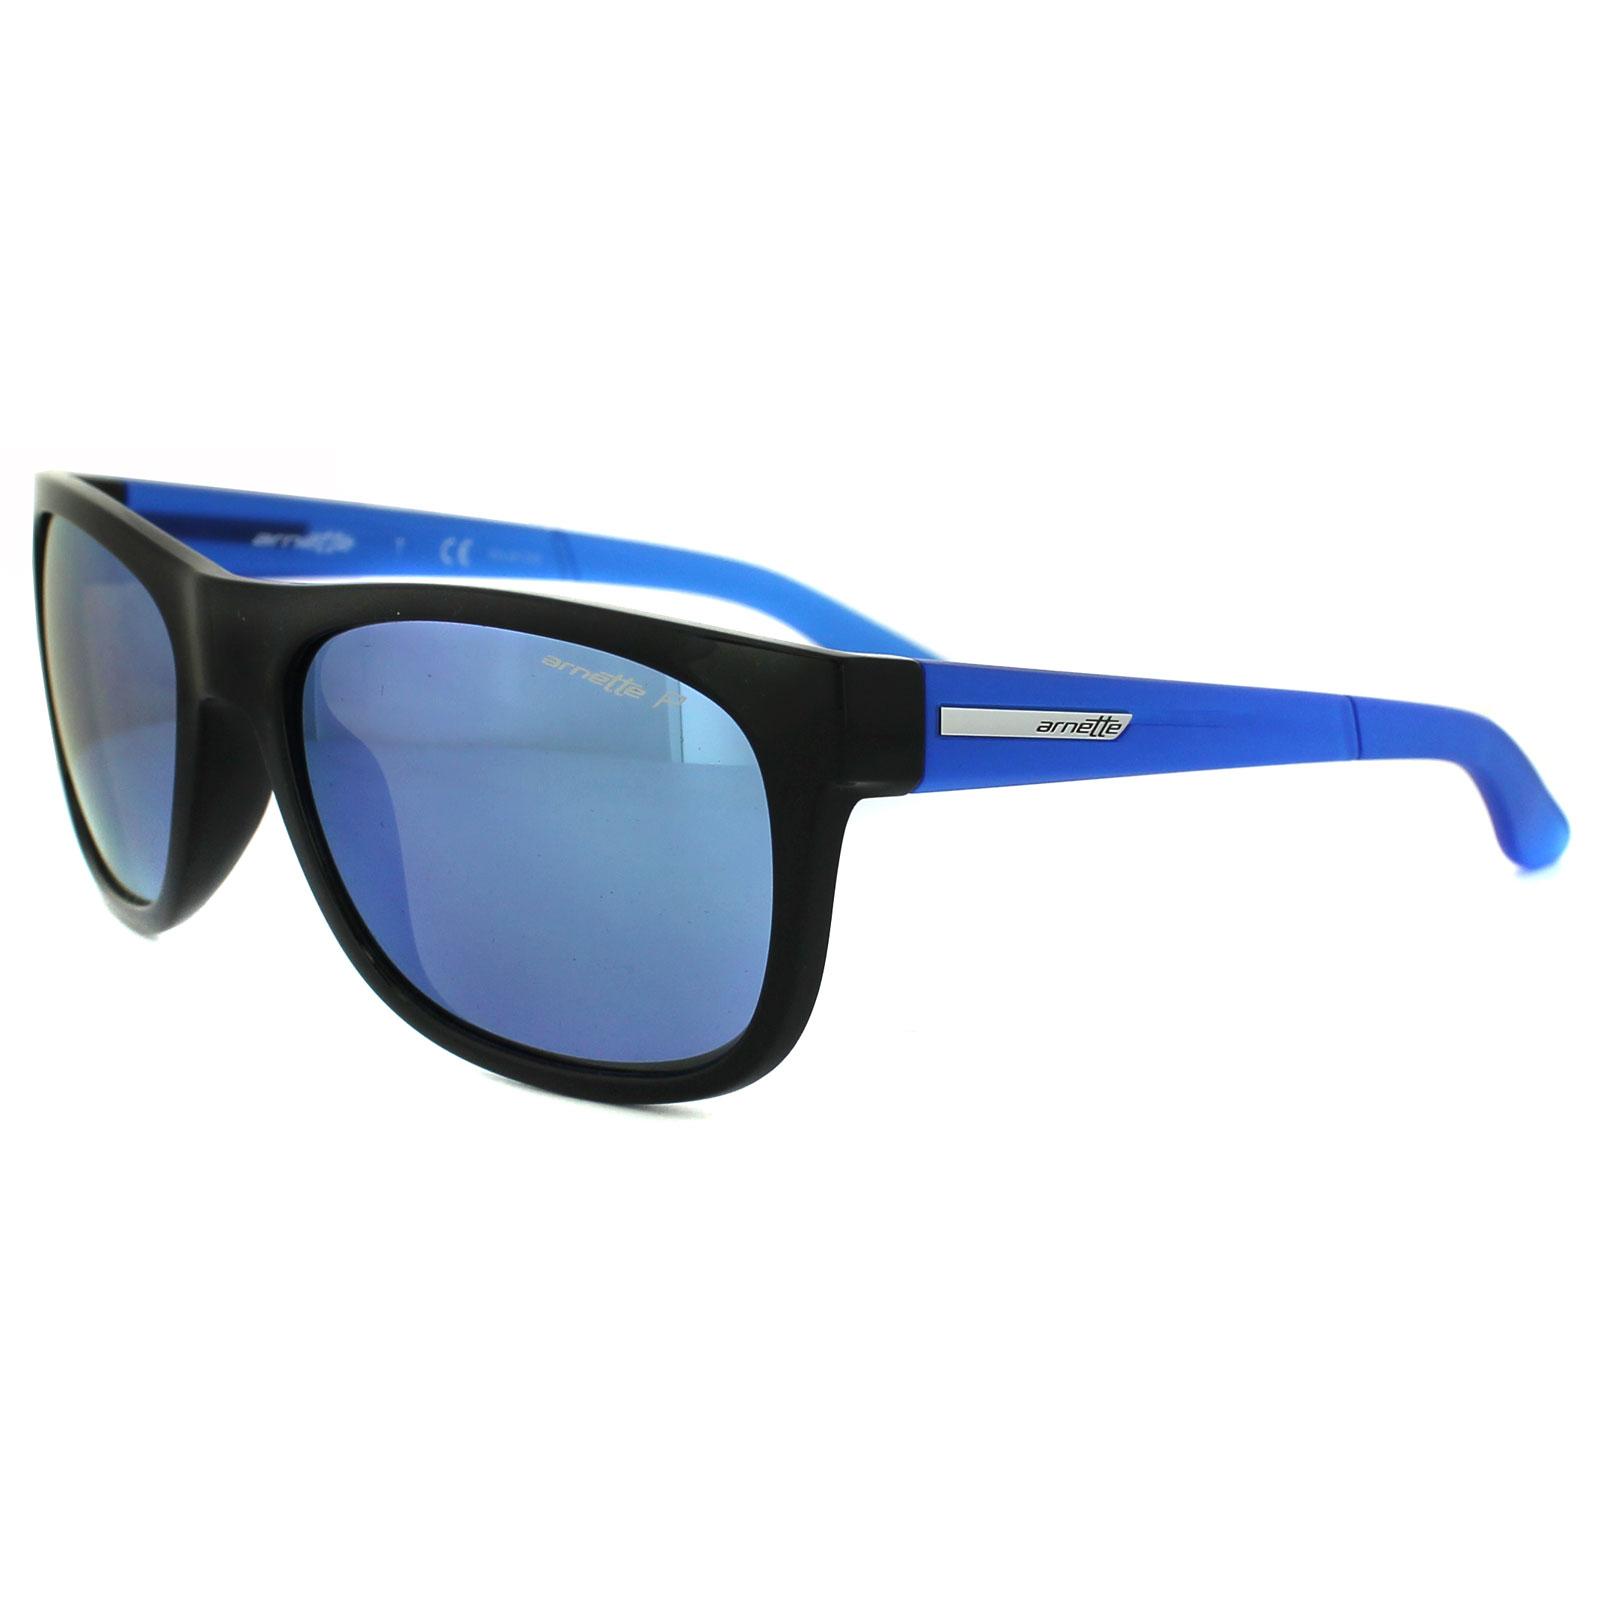 Arnette Sunglasses 4206 Fire Drill Lite 222522 Black Blue ...